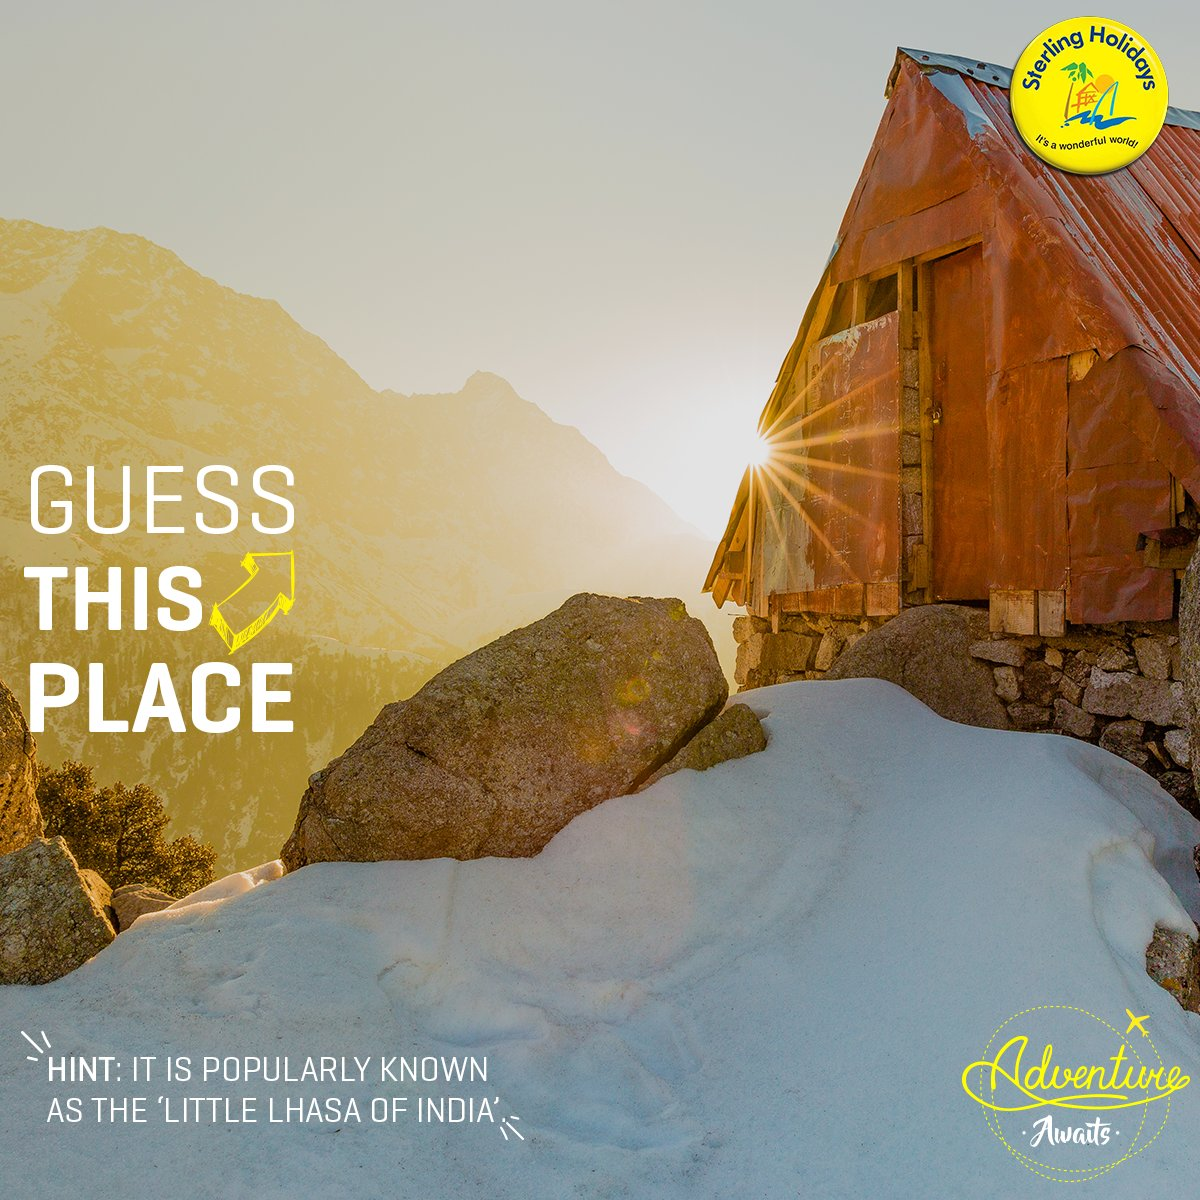 #GuessThePlace Gorge on Tibetan #cuisine &amp; take a tour of the Tibetan culture without stepping a foot outside India. #AdventureAwaits.<br>http://pic.twitter.com/nYx3dcxwYA